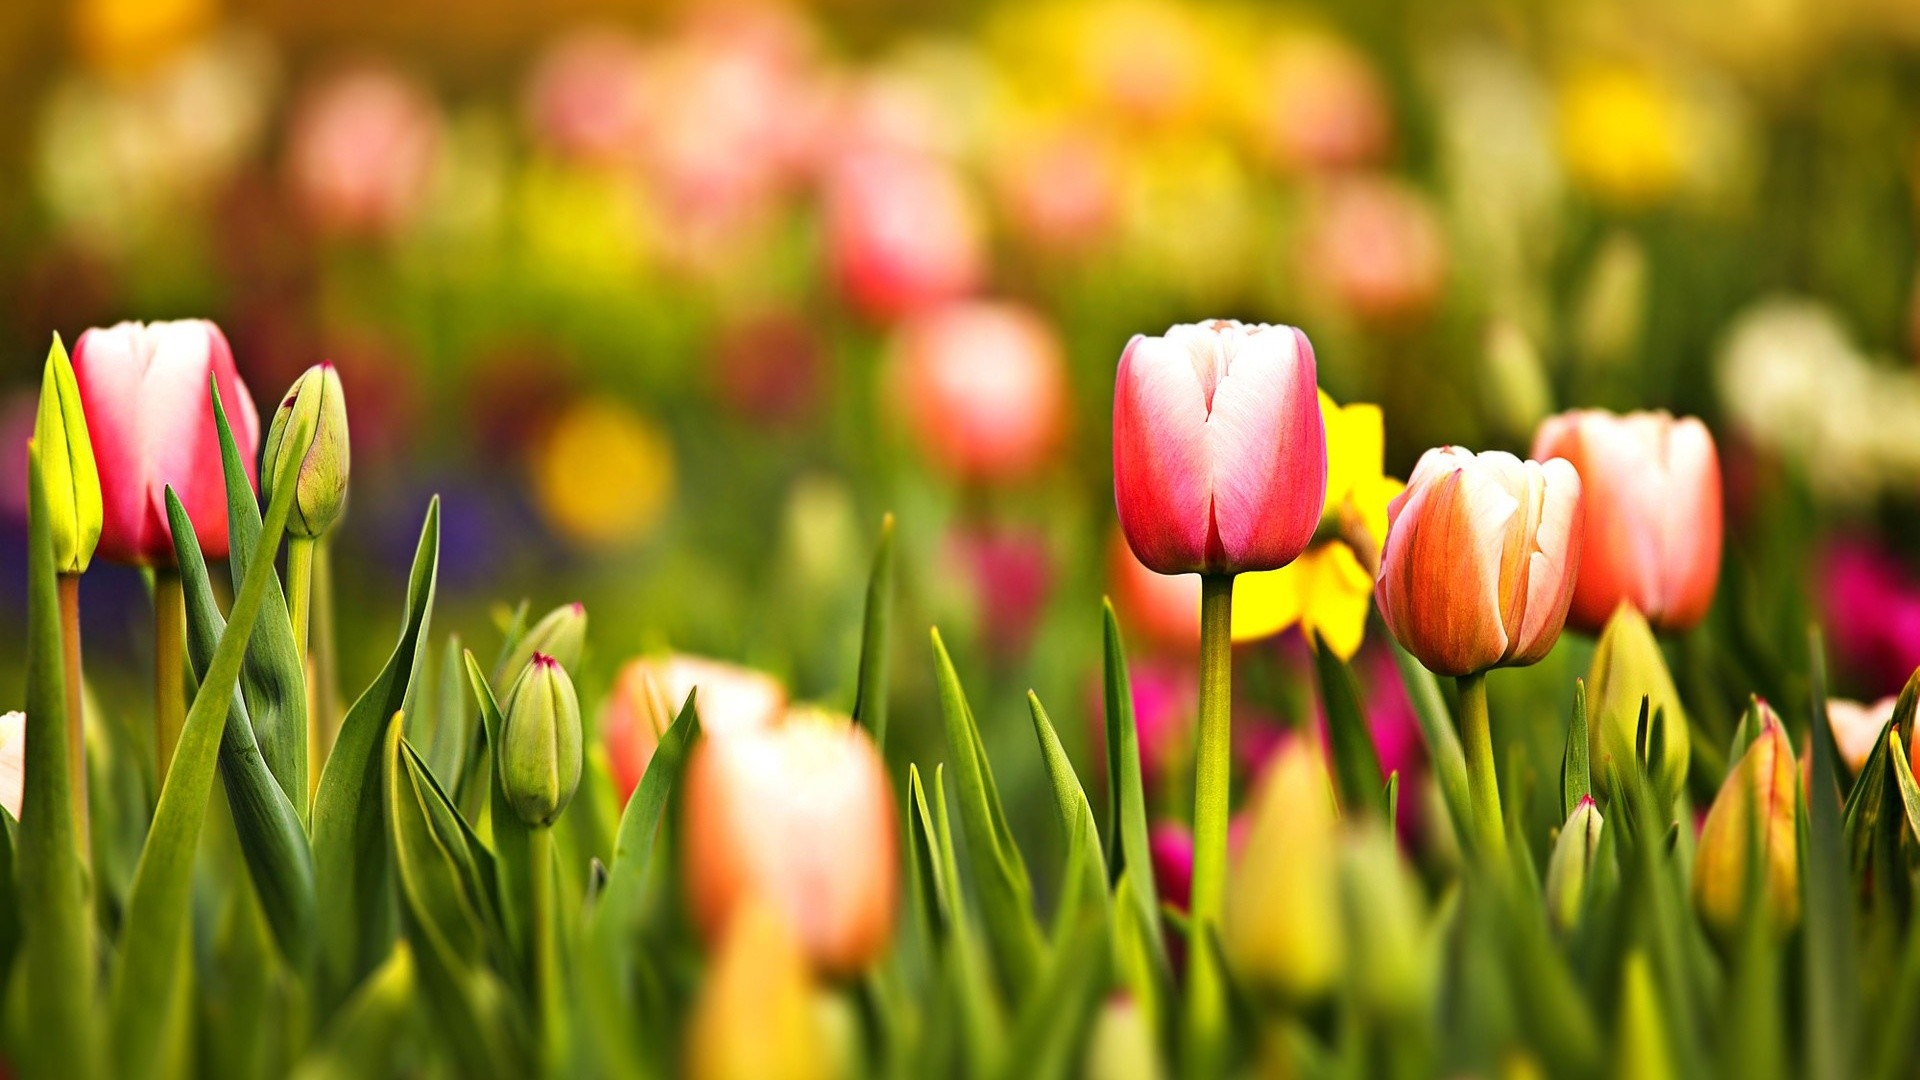 1920x1080 Wallpaper spring flowers decor flower floral wallpapers iphone mac .